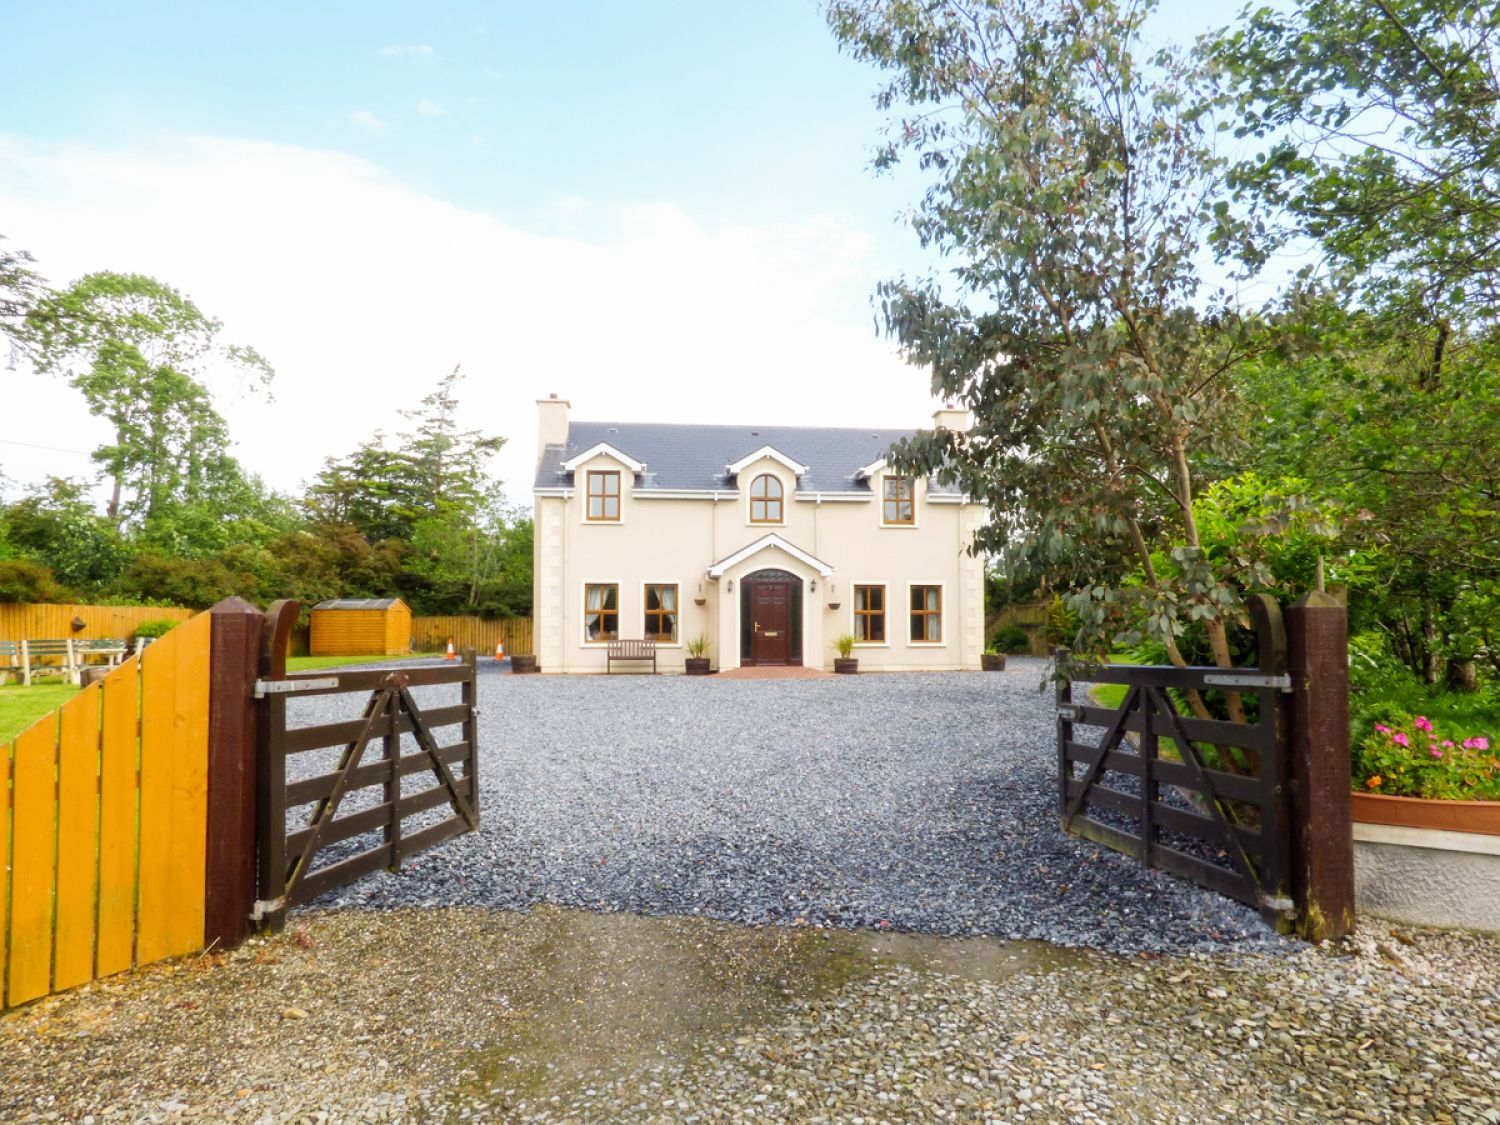 1 Alder Lane - County Donegal - 961485 - photo 1